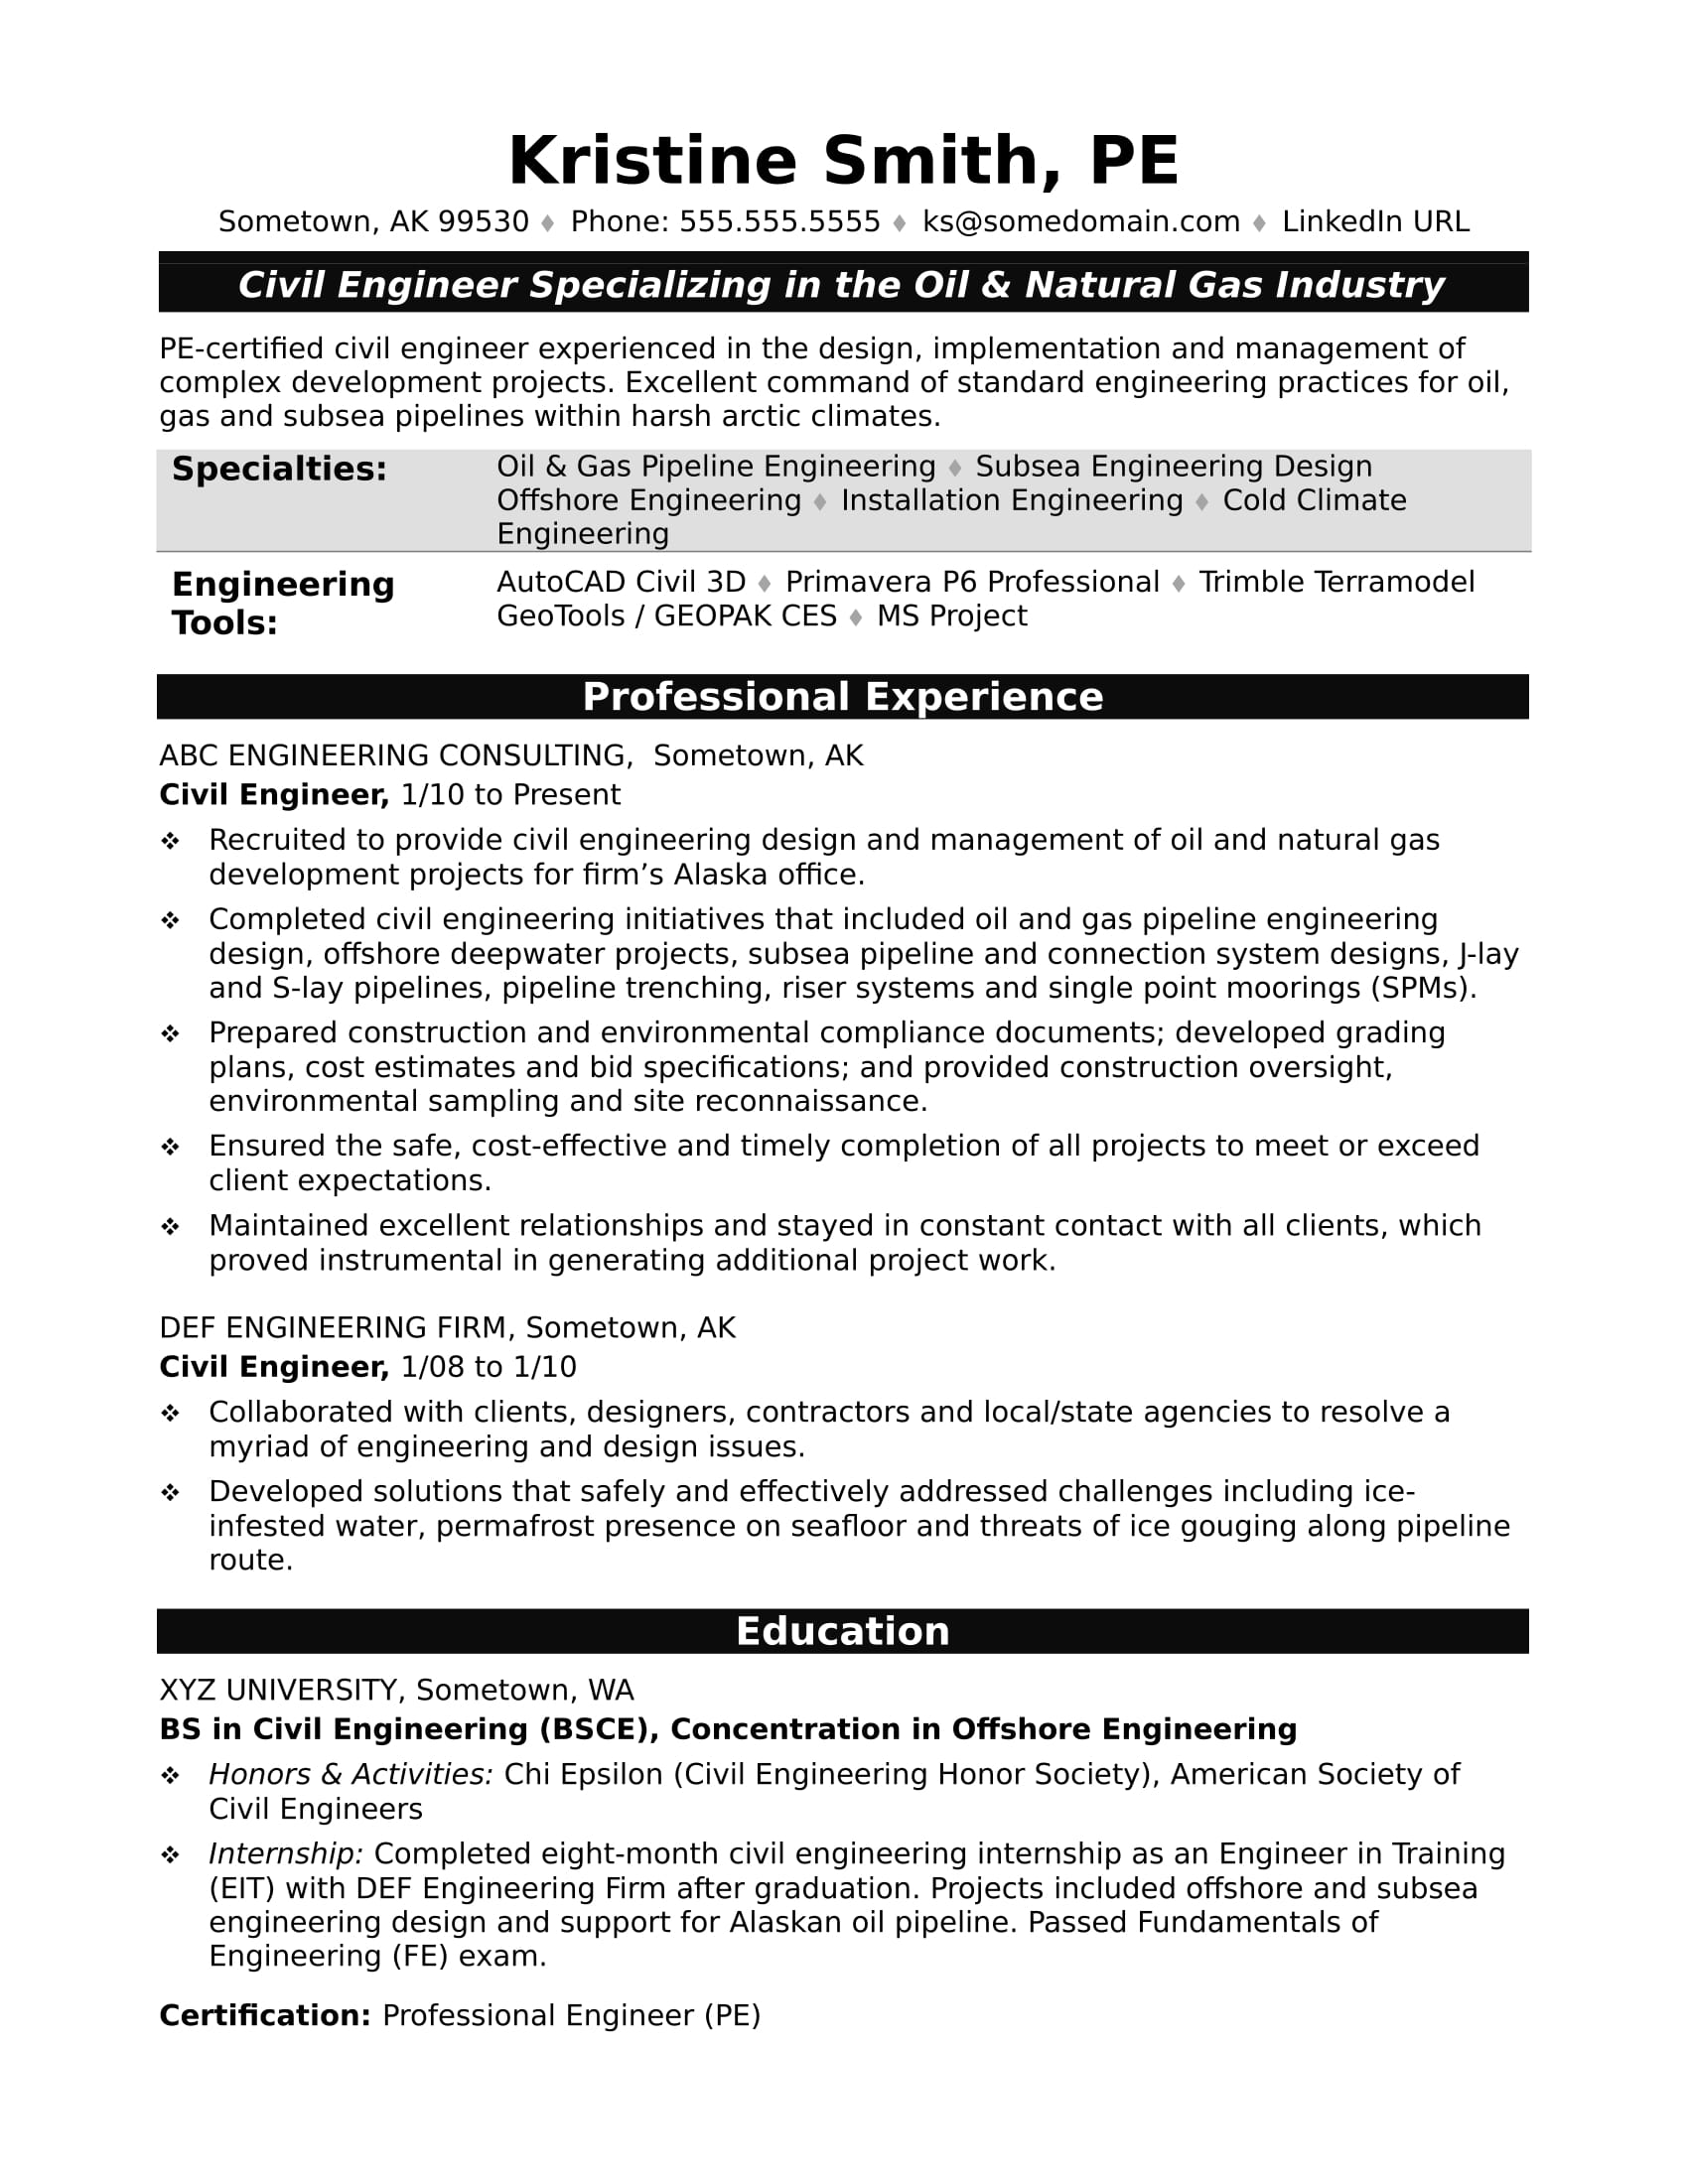 Marvelous Sample Resume For A Midlevel Civil Engineer Regarding Professional Engineer Resume